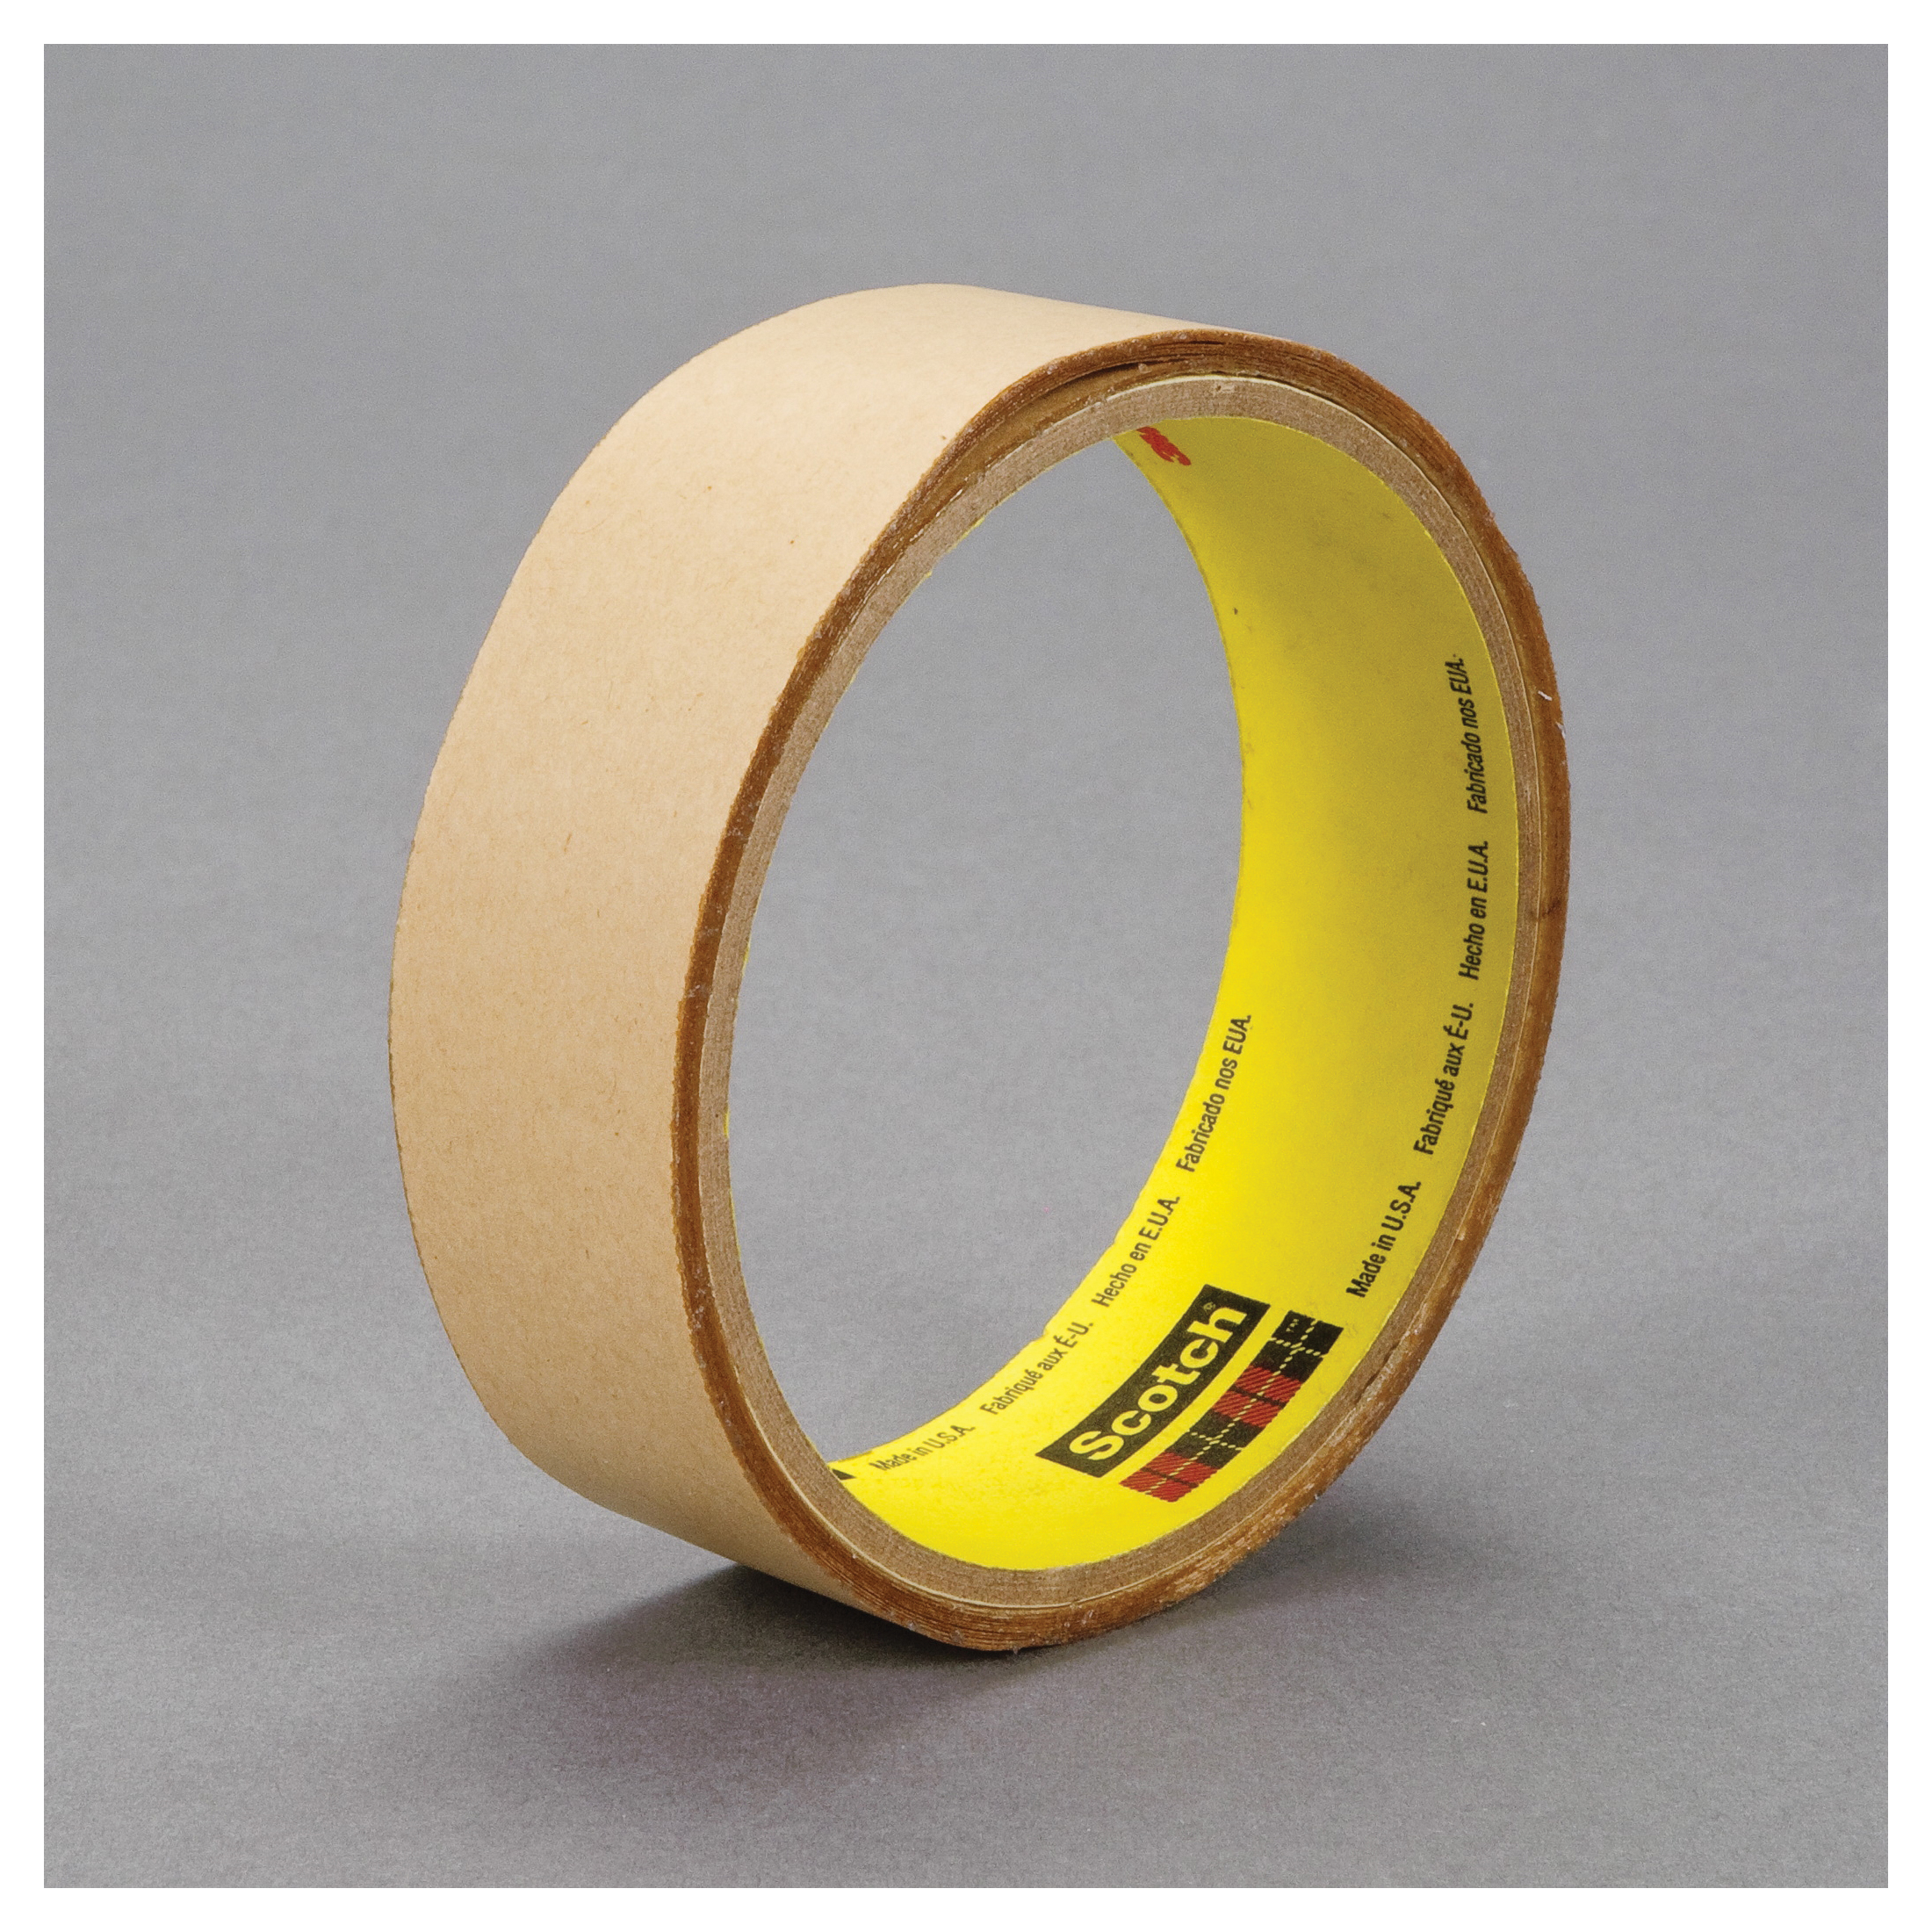 3M™ 021200-24448 Double Coated Adhesive Transfer Tape, 36 yd L x 1 in W, 5 mil THK, 5 mil Acrylic Adhesive, Clear